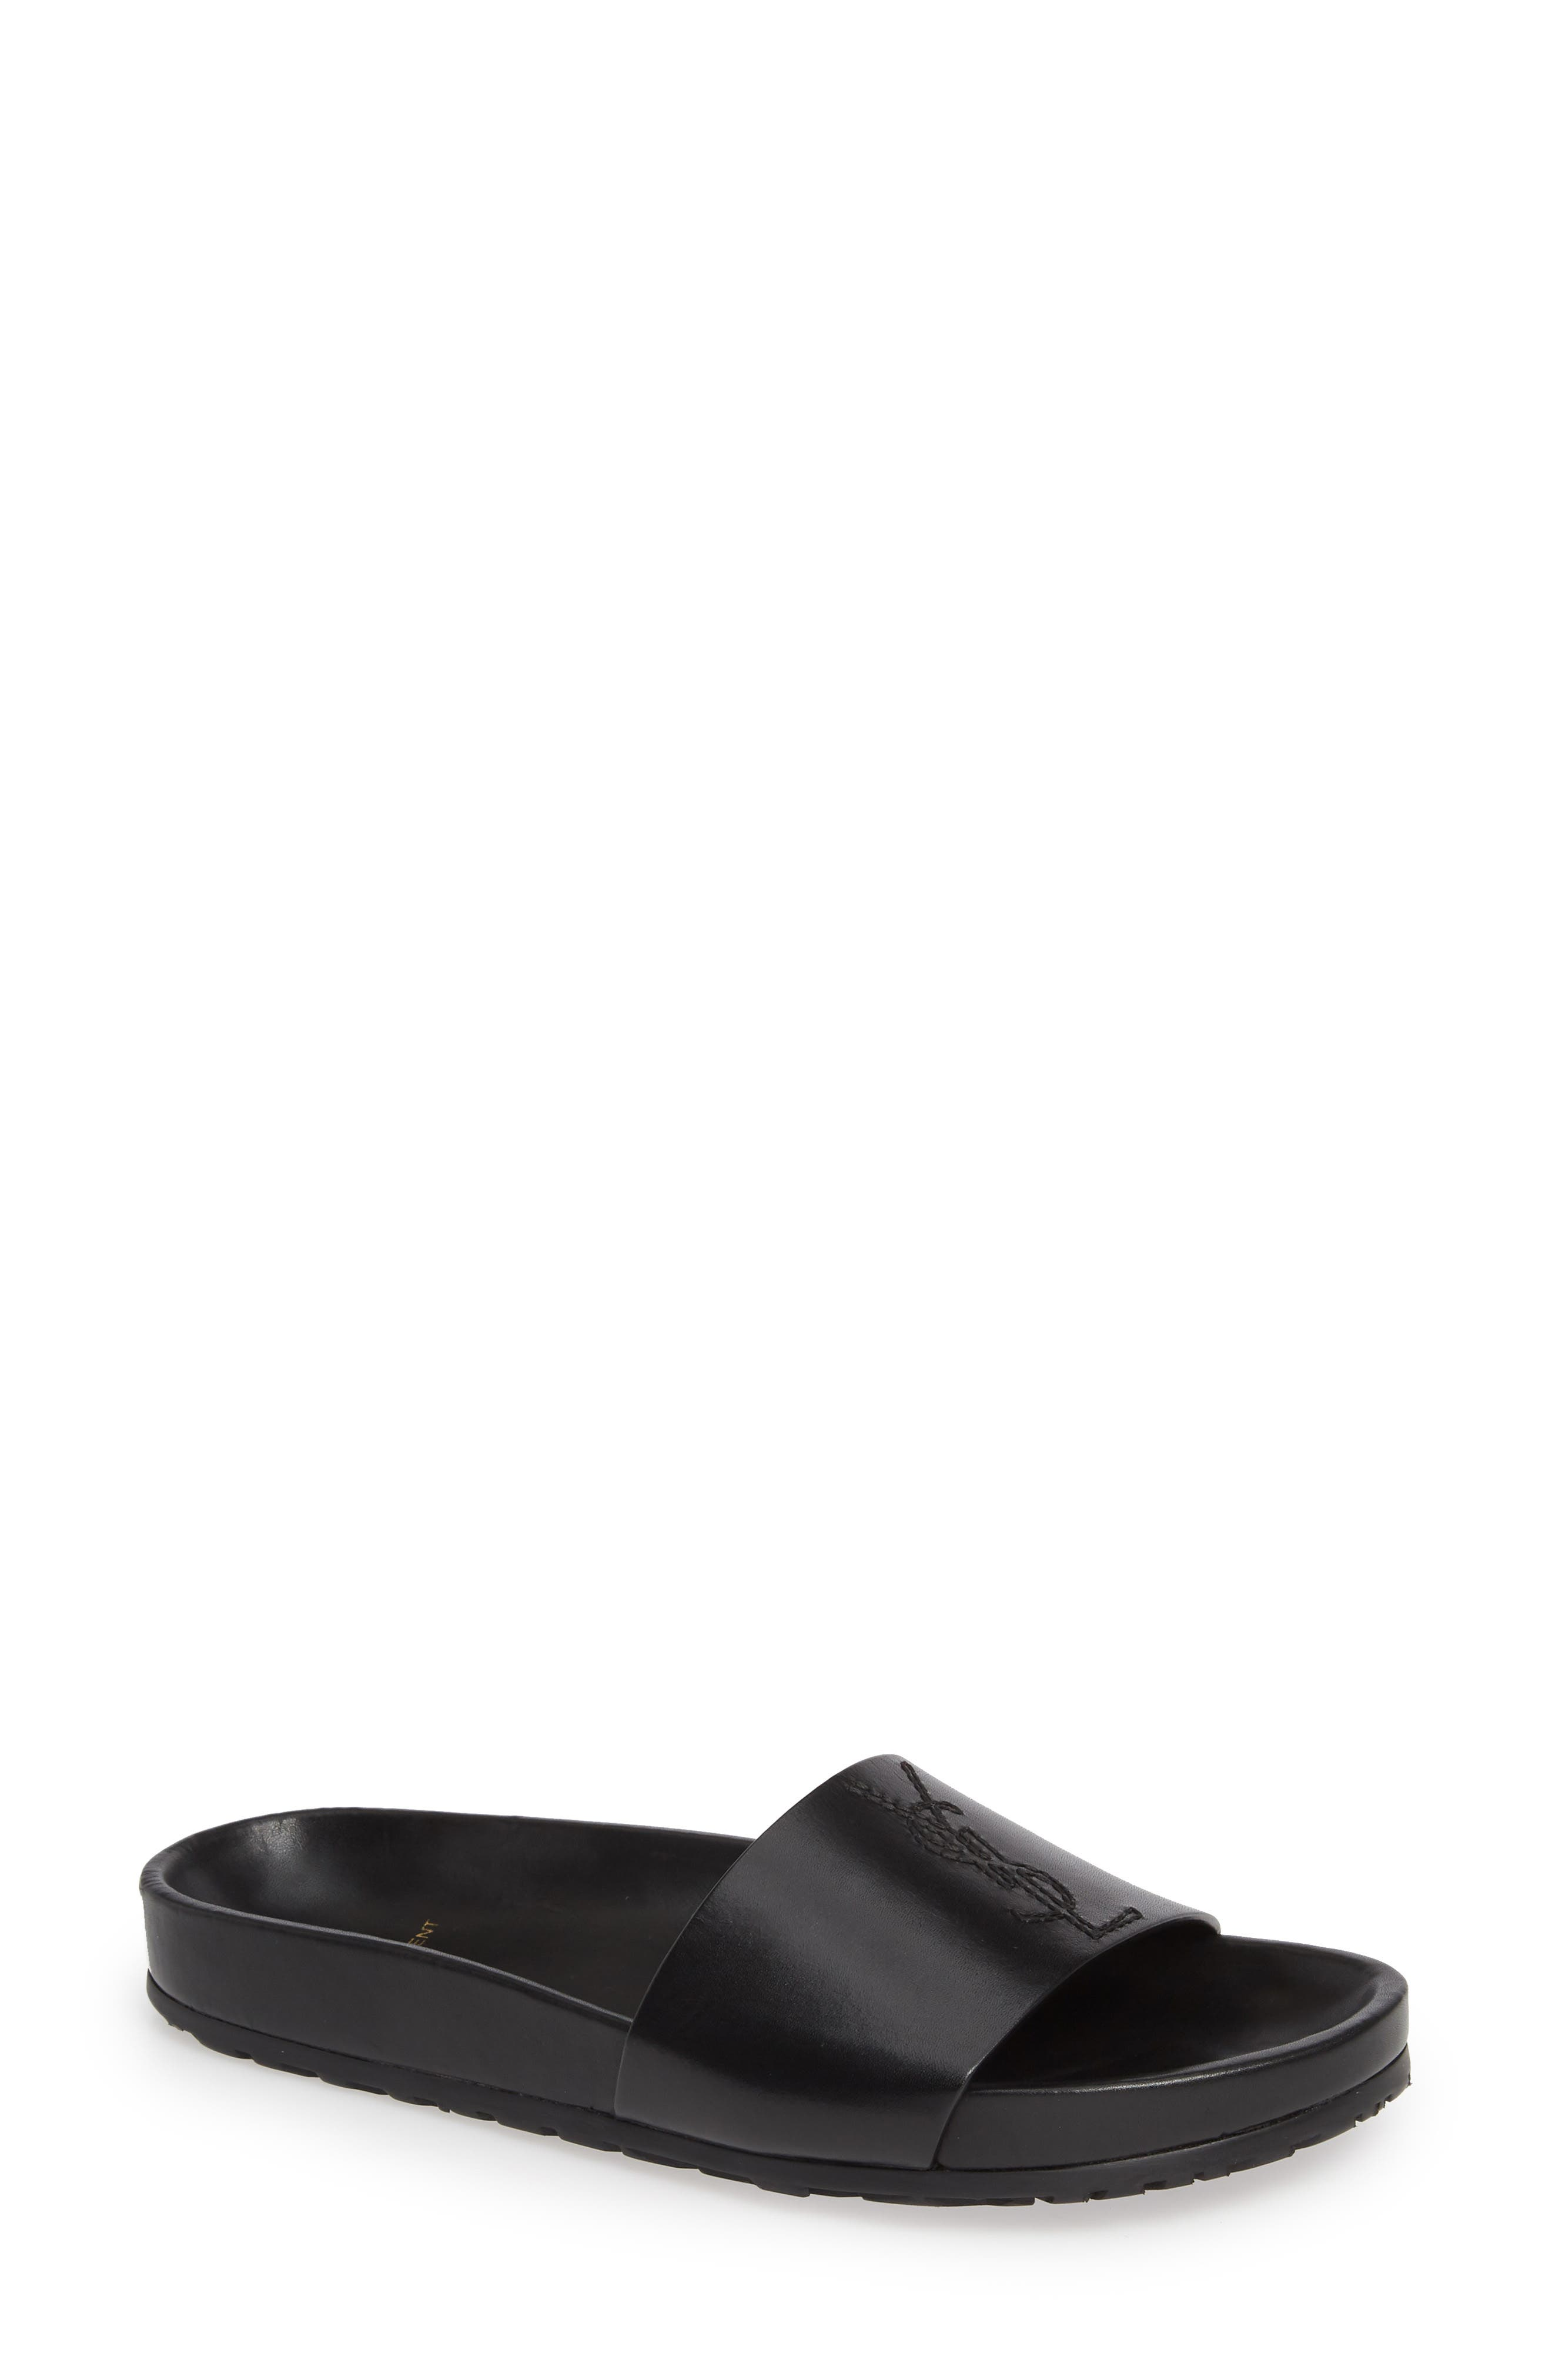 SAINT LAURENT Jimmy Logo Slide Sandal, Main, color, BLACK LEATHER